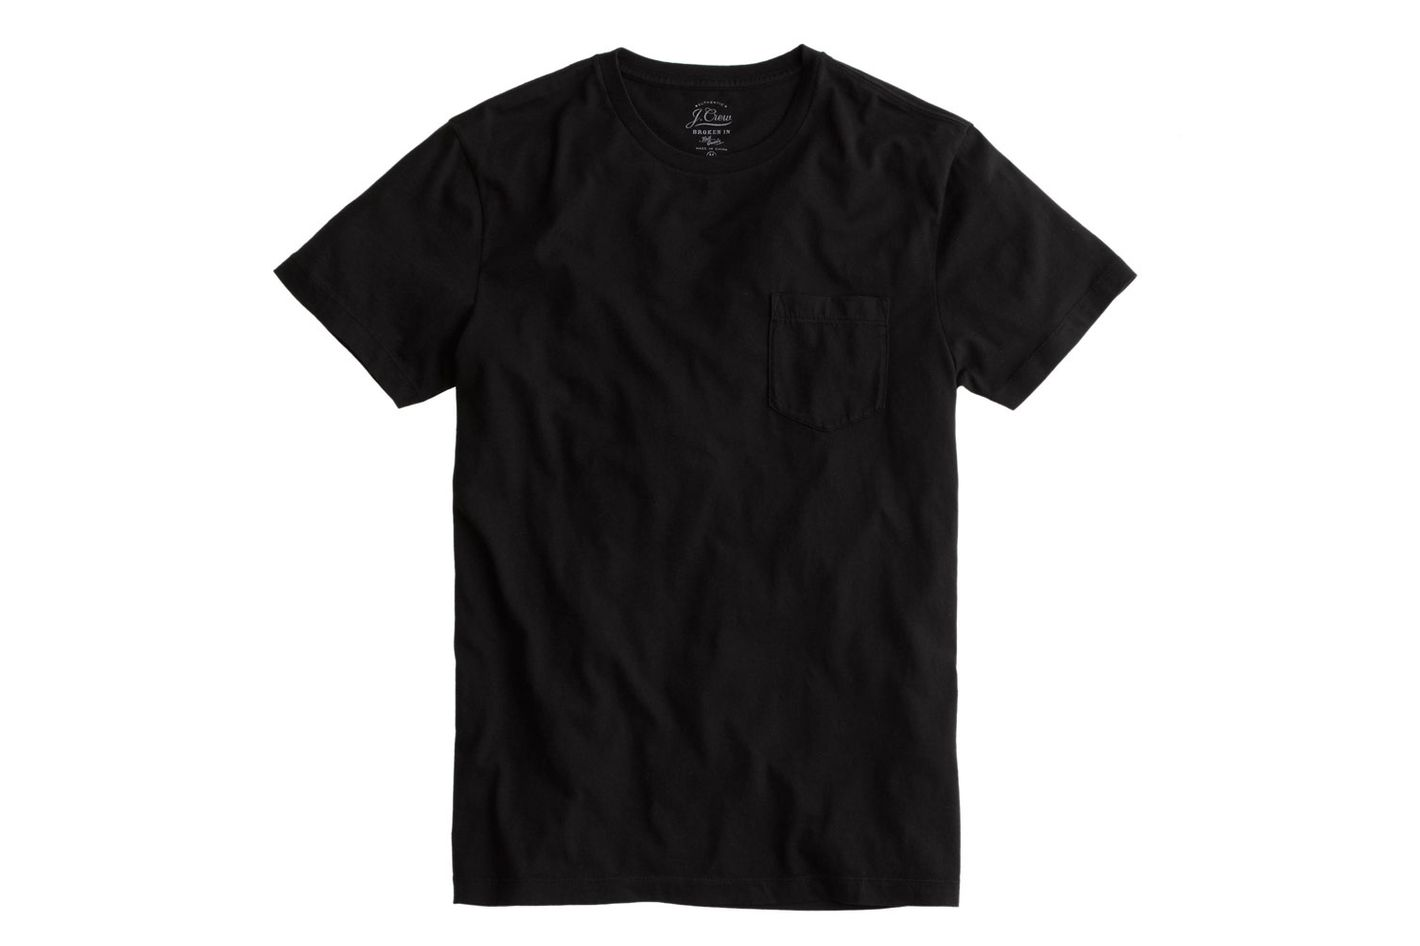 f33dd5686cd The Best Black T-Shirt for Men According to Nick Wooster